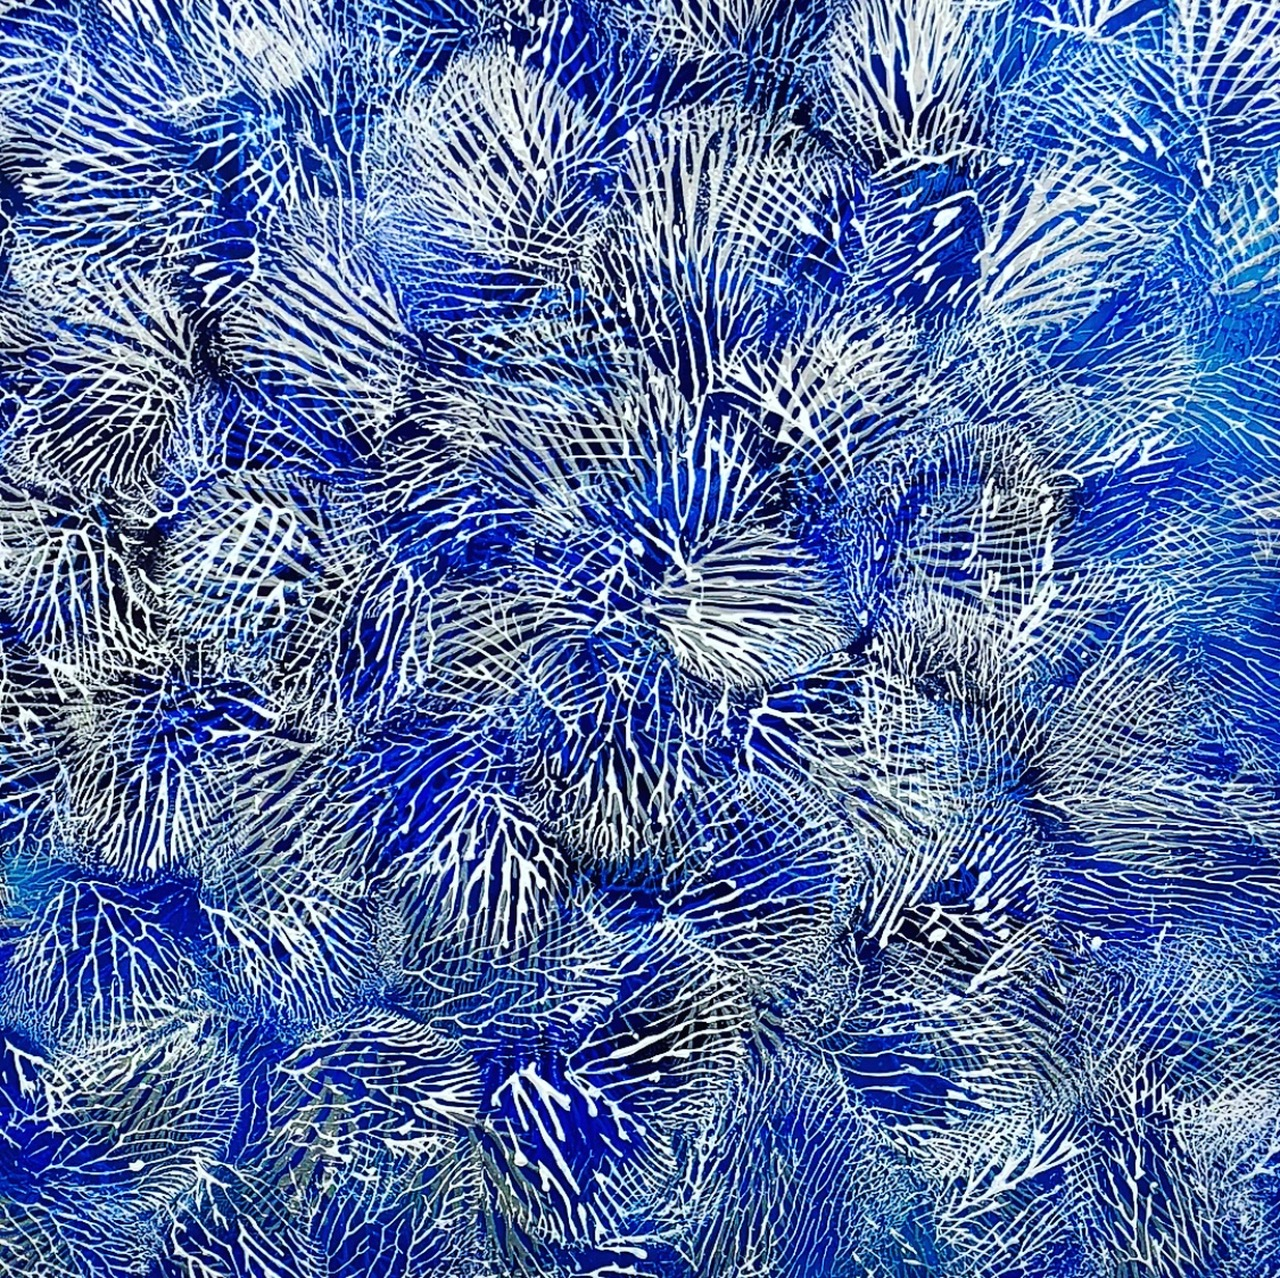 Above: Thierry B.,  The Deep Blue , Coral Series, 2018, Synthetic Polymer Paint on Linen, 183 x 183cm, P.O.A